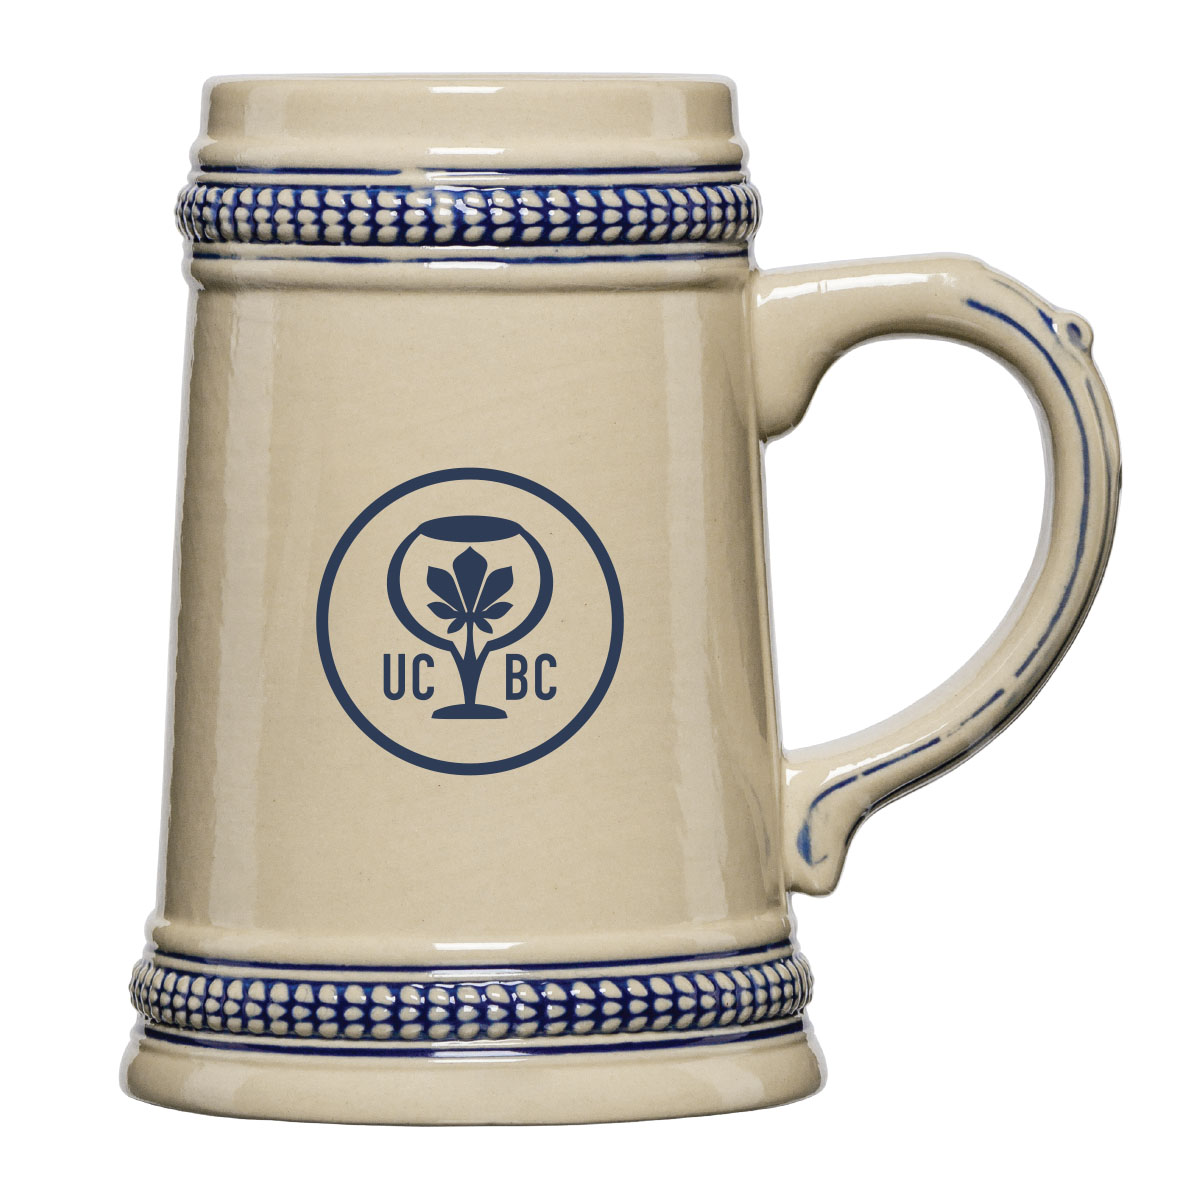 Authentic .5L German Stein